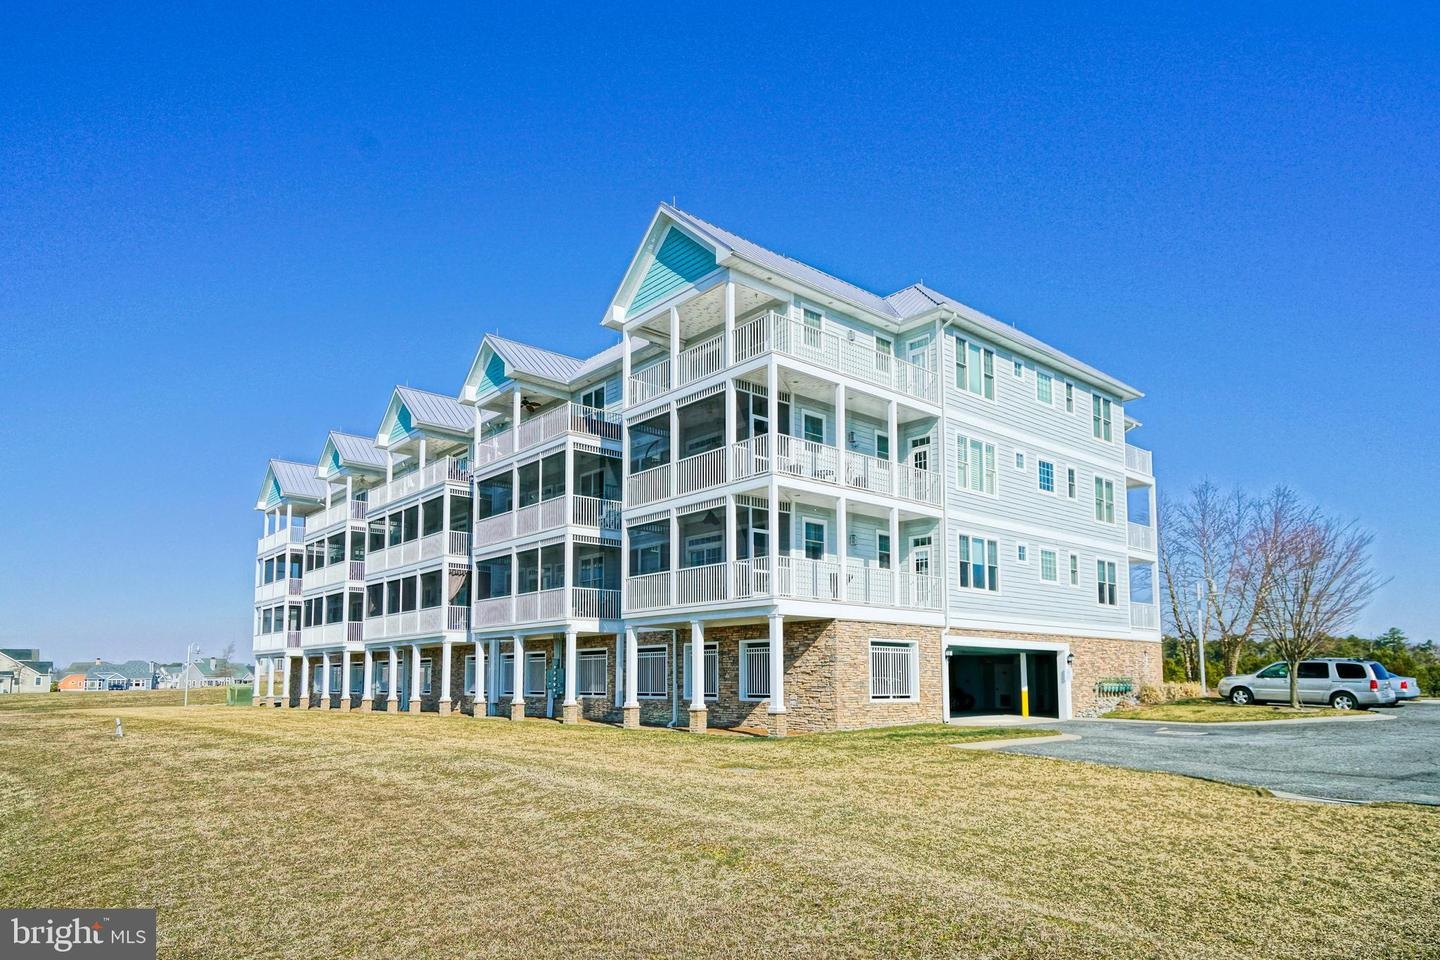 DESU133638-301520138266-2019-08-30-11-21-58 27270 18th Blvd #13105 | Millsboro, DE Real Estate For Sale | MLS# Desu133638  - Lee Ann Group